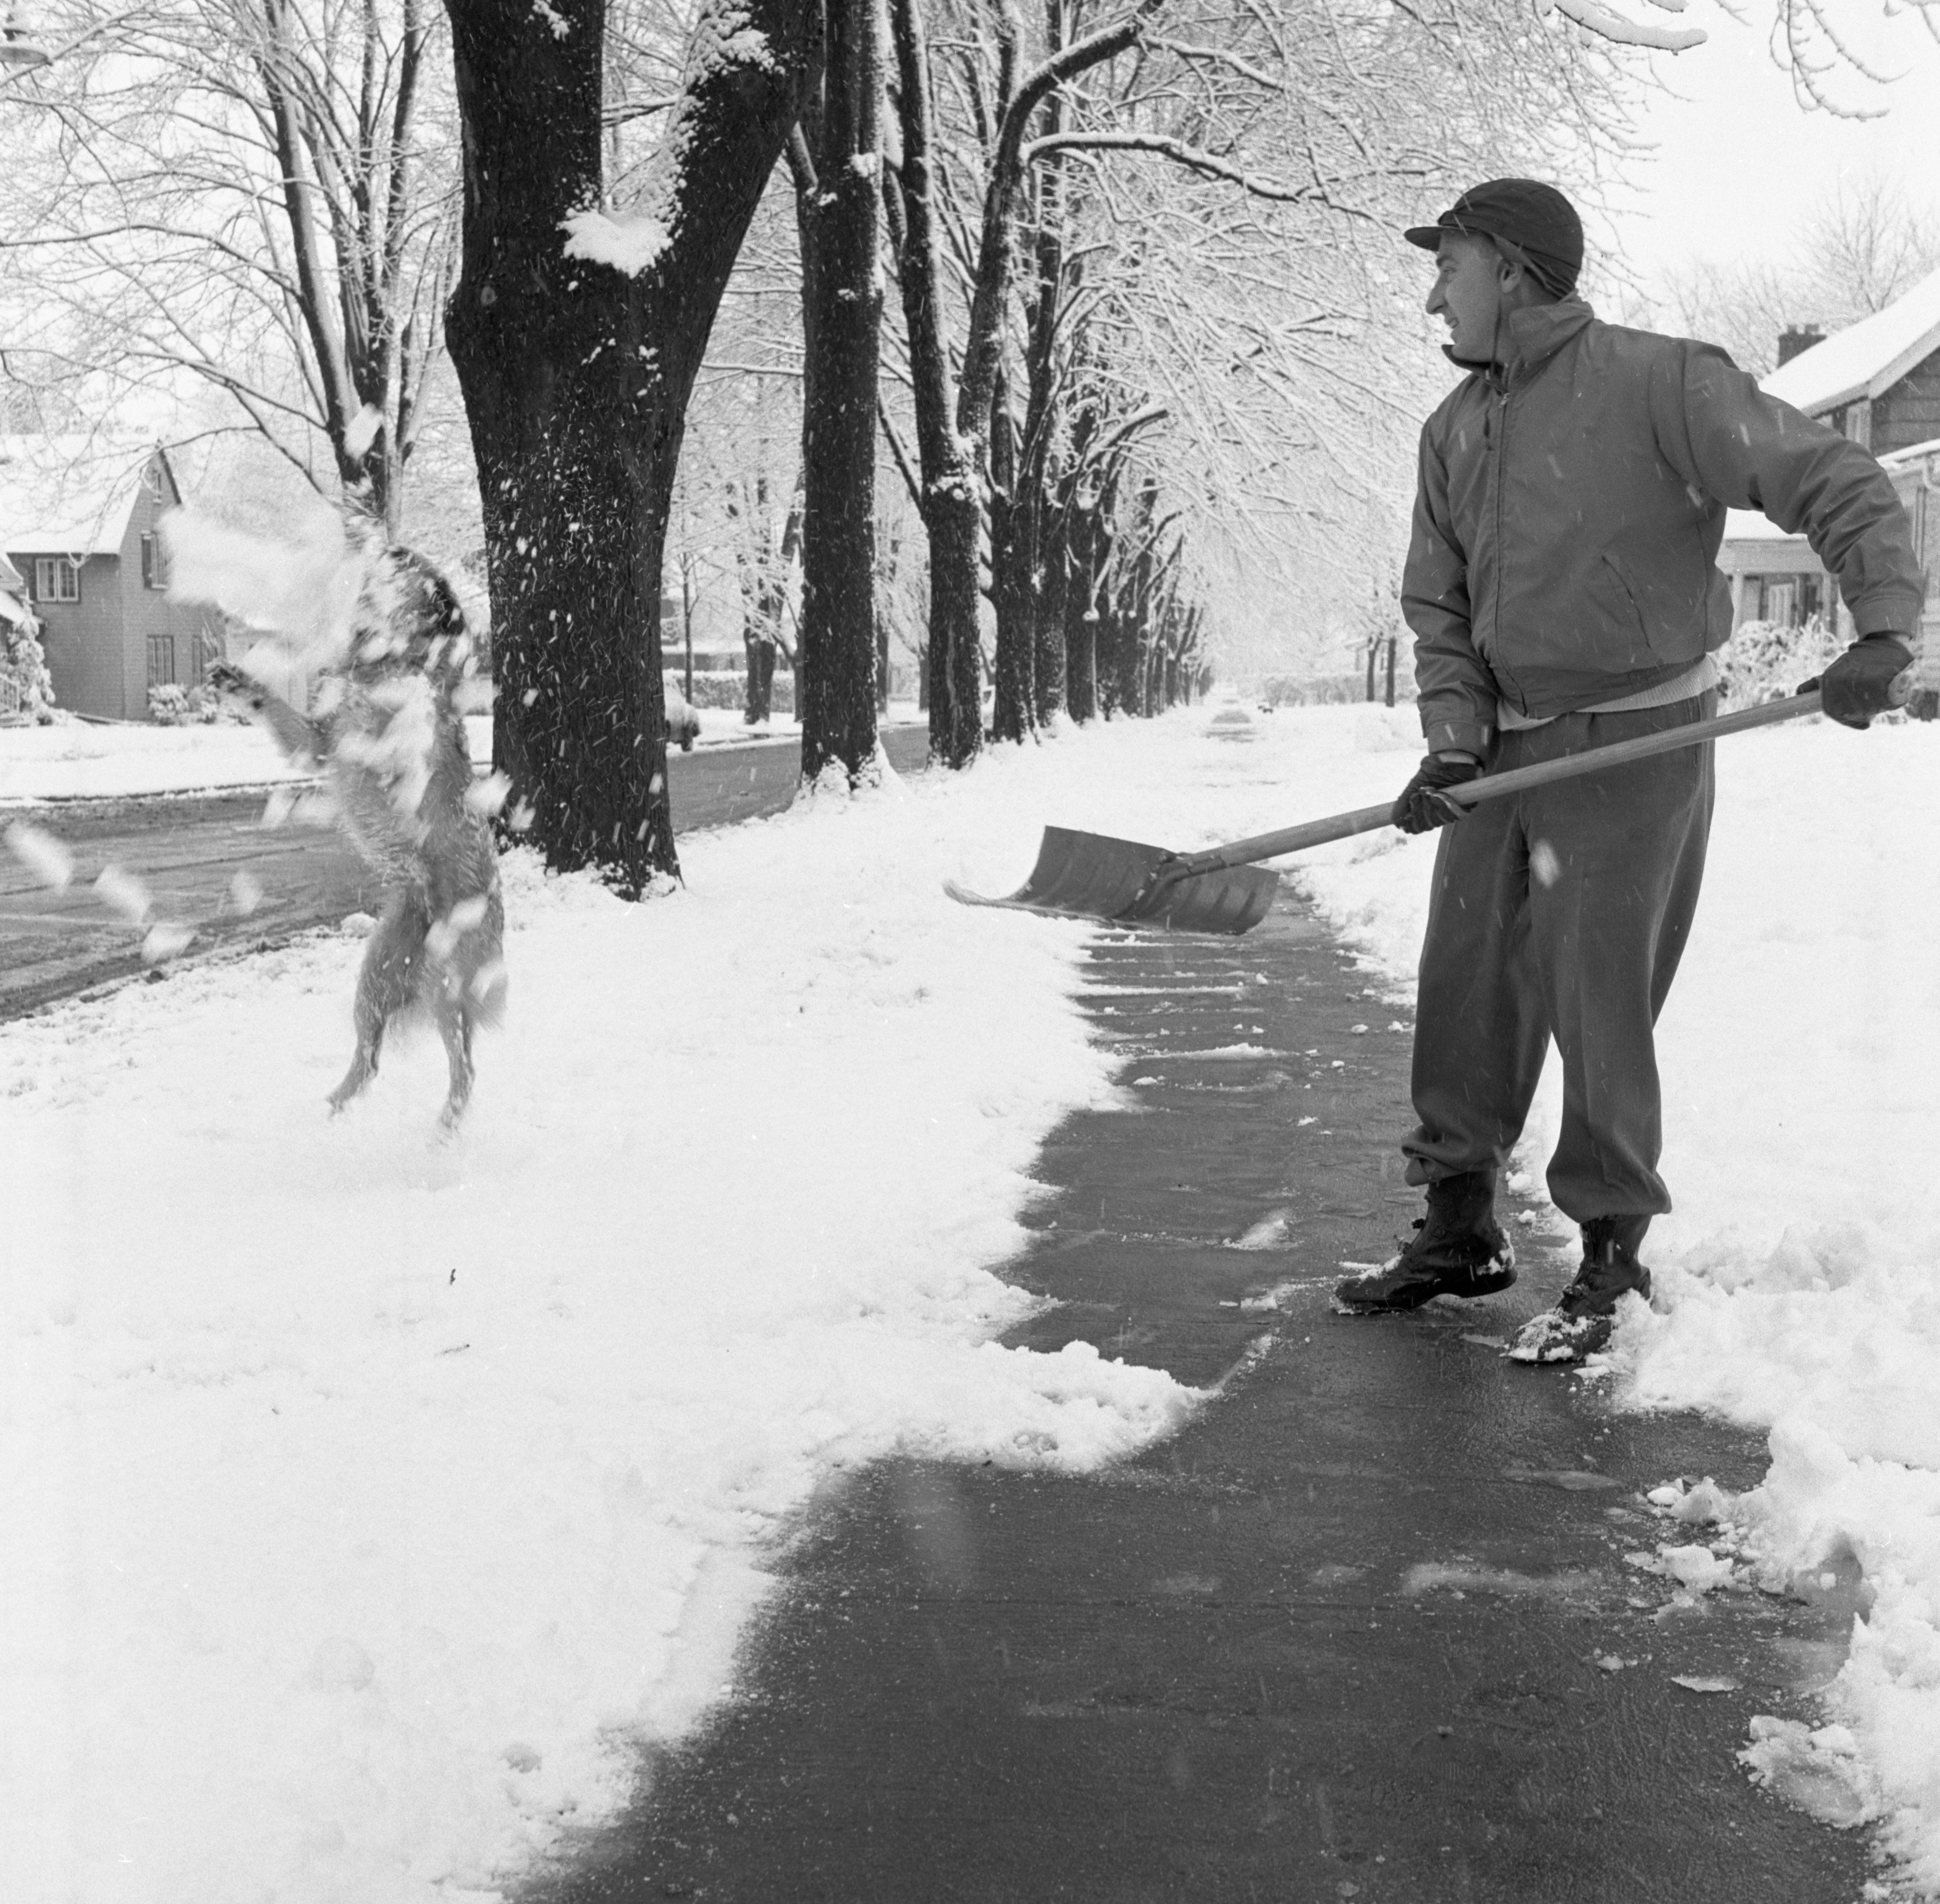 Man & Dog Shoveling Snow, December 1957 image